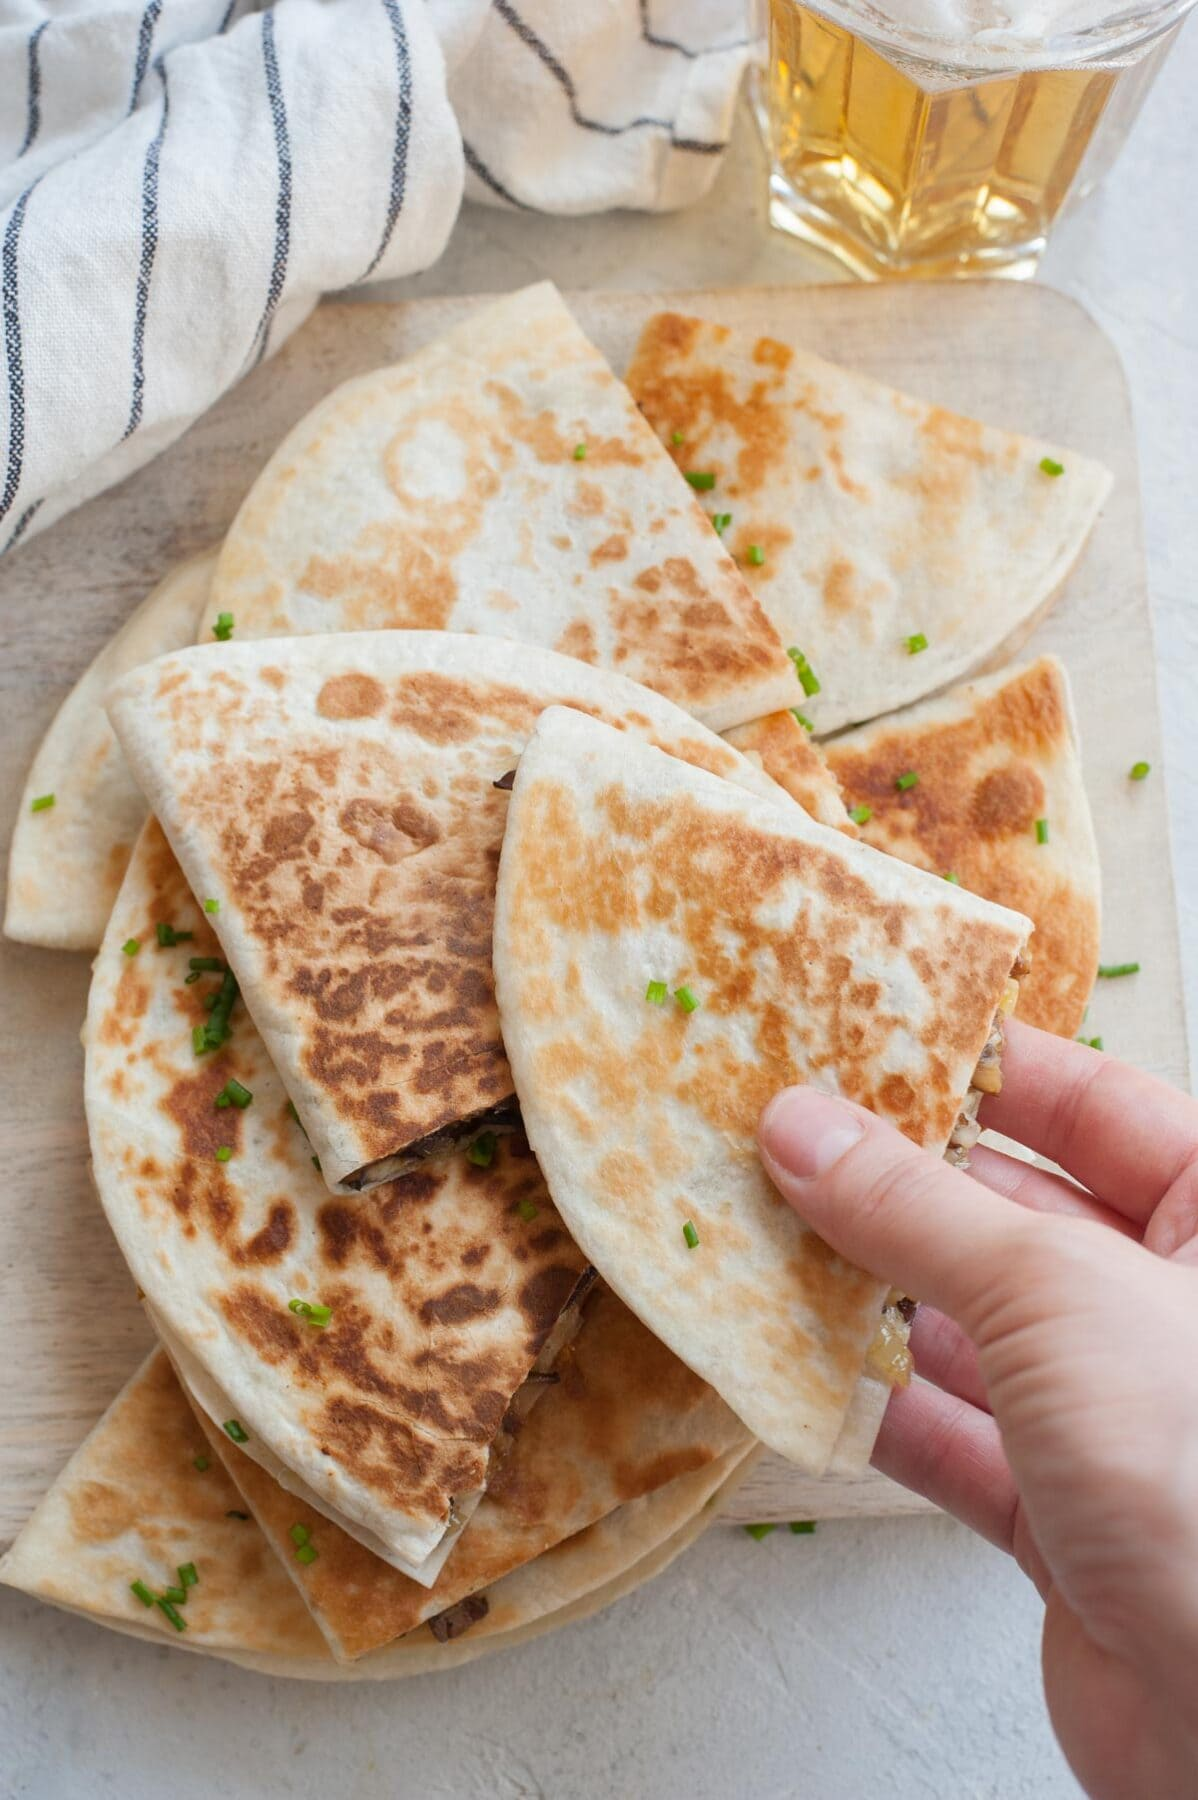 A hand is reaching for a quesadilla. Stack of quesadillas on a wooden board.